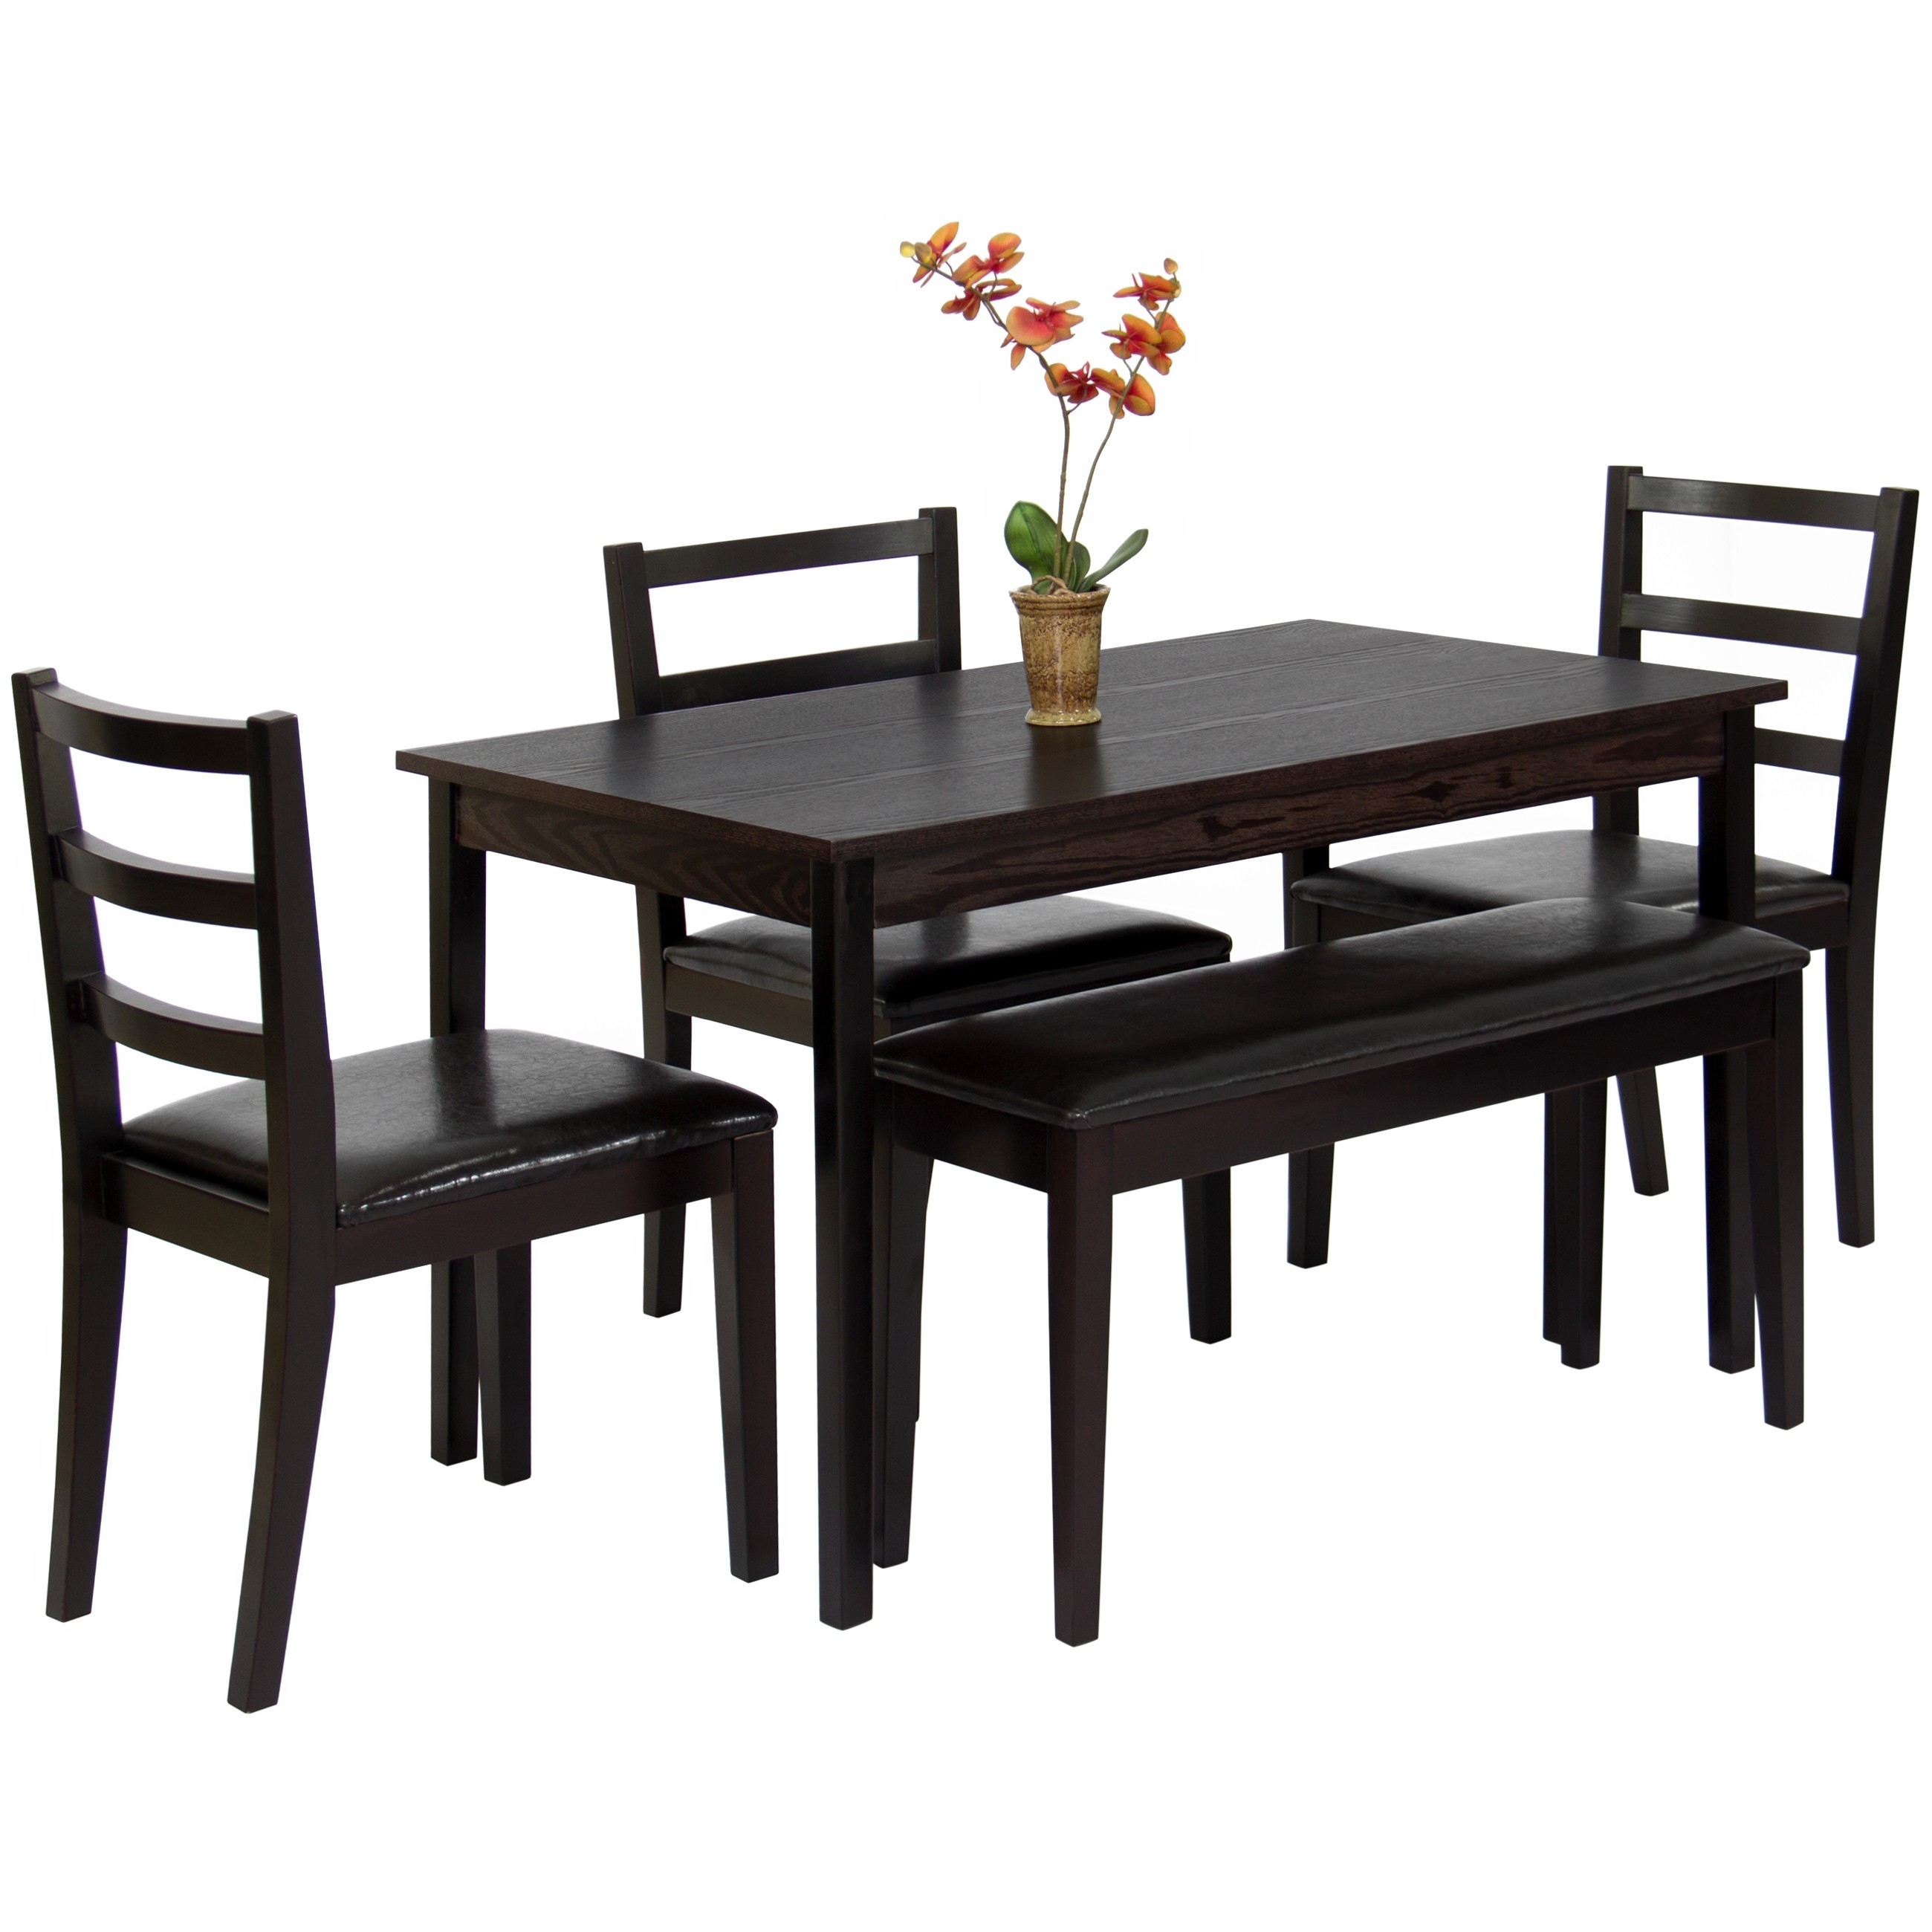 Top 20 Jaxon Grey 5 Piece Extension Counter Sets With Wood